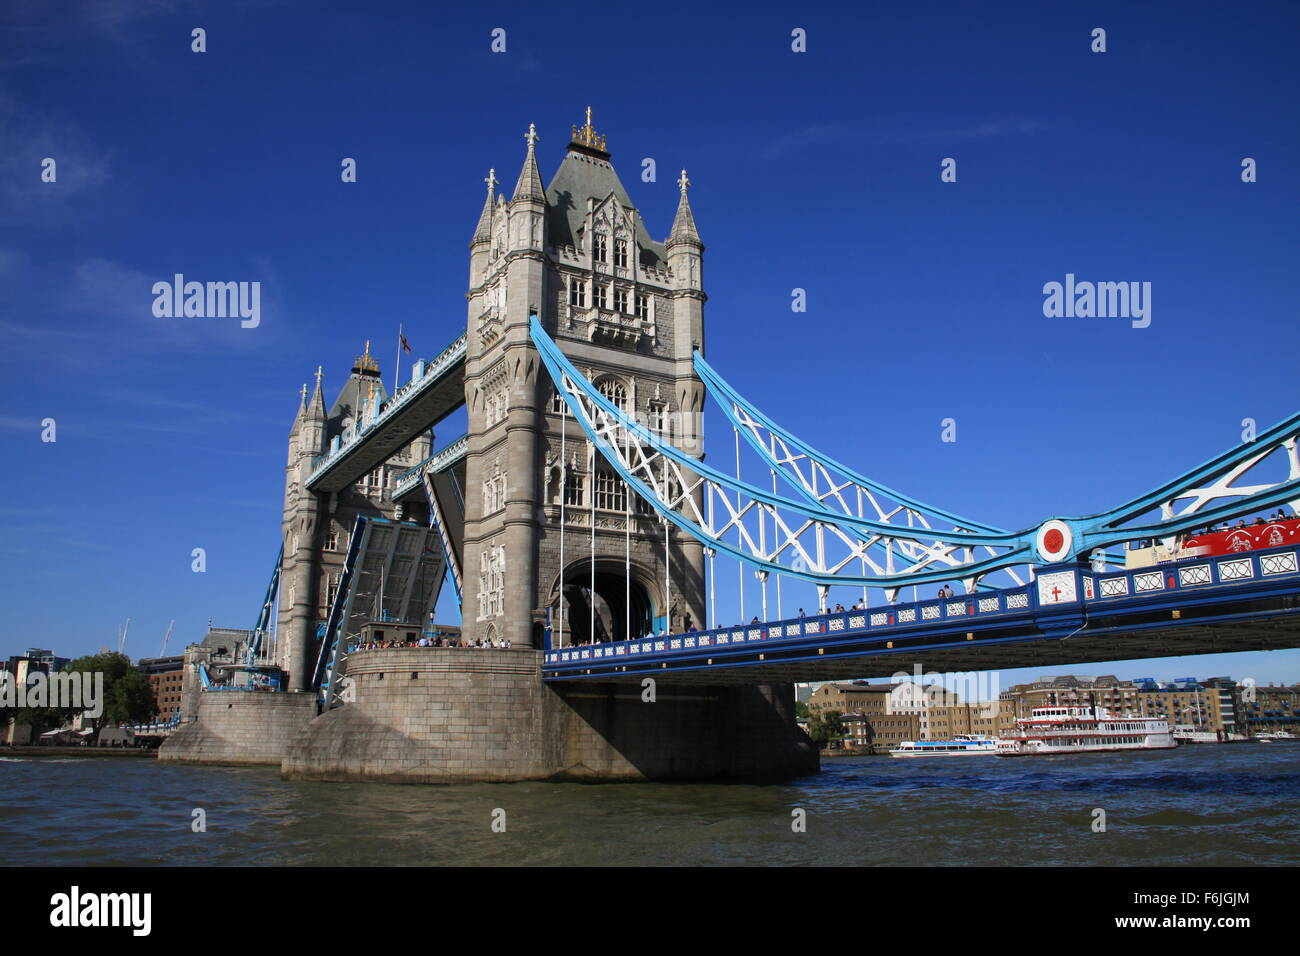 Tower bridge London - Stock Image